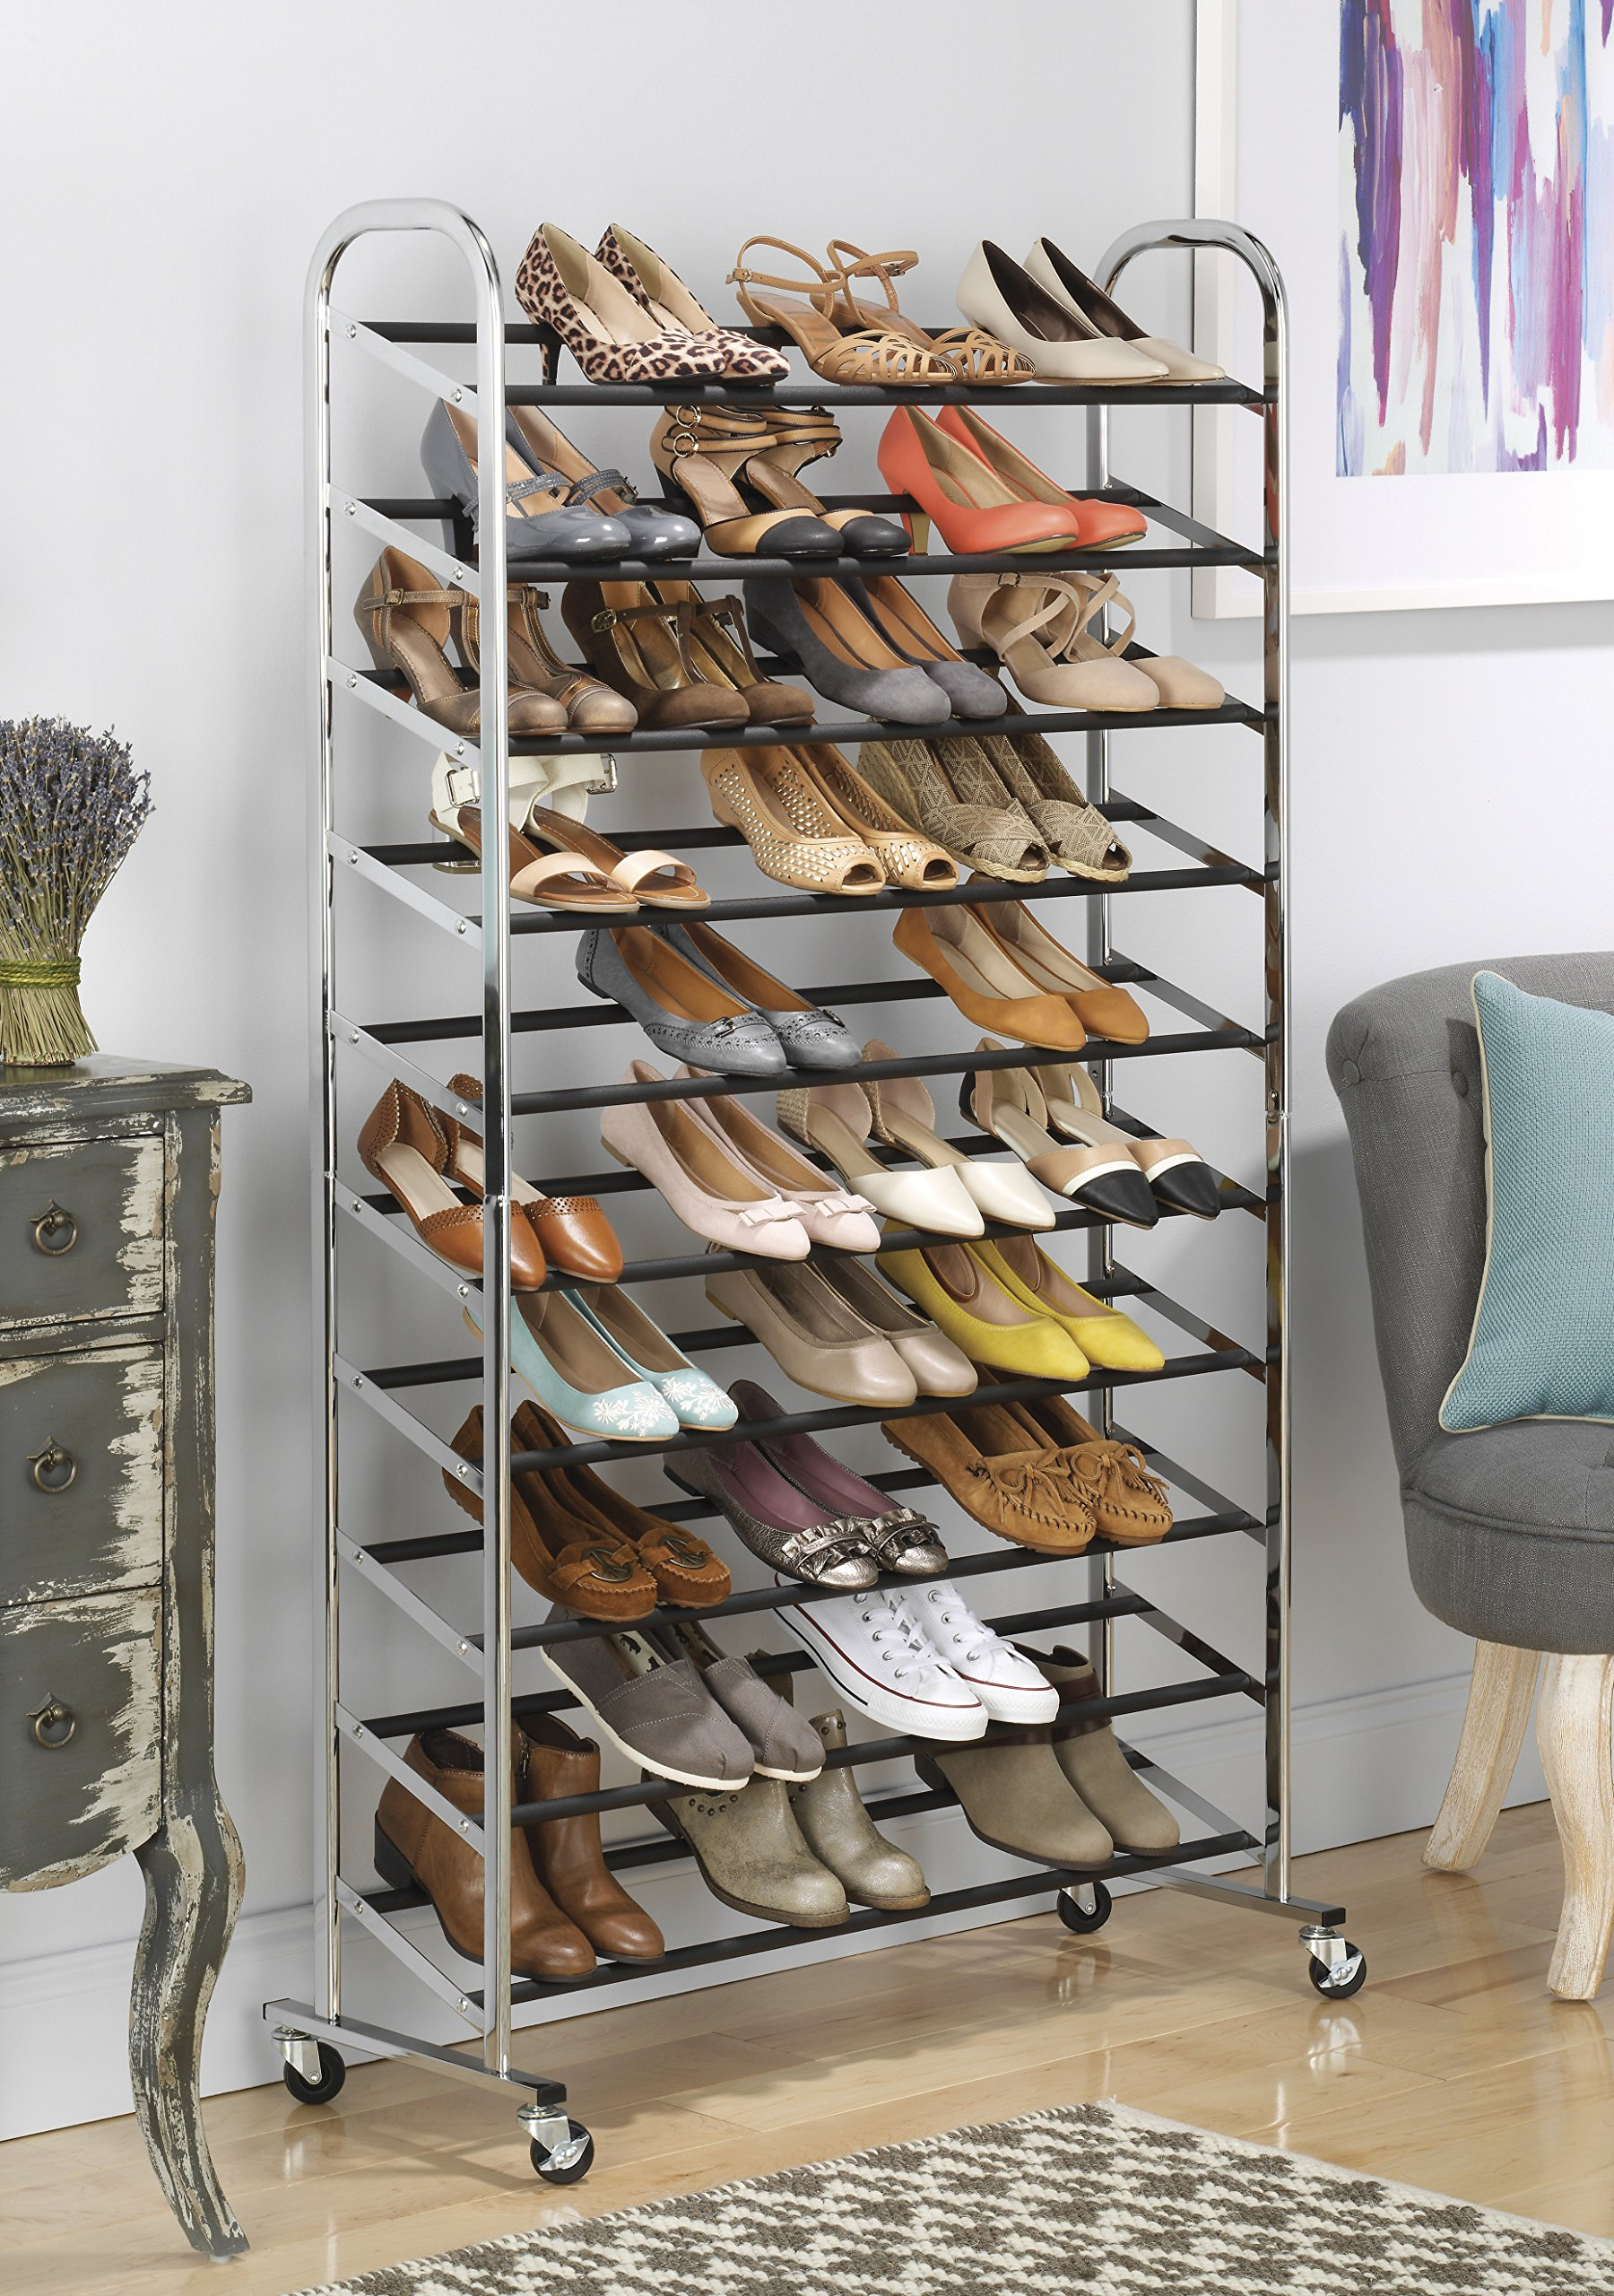 Whitmor 10 Tier Shoe Tower - 50 Pair - Rolling Shoe Rack with Locking Wheels - Chrome by Whitmor (Image #2)